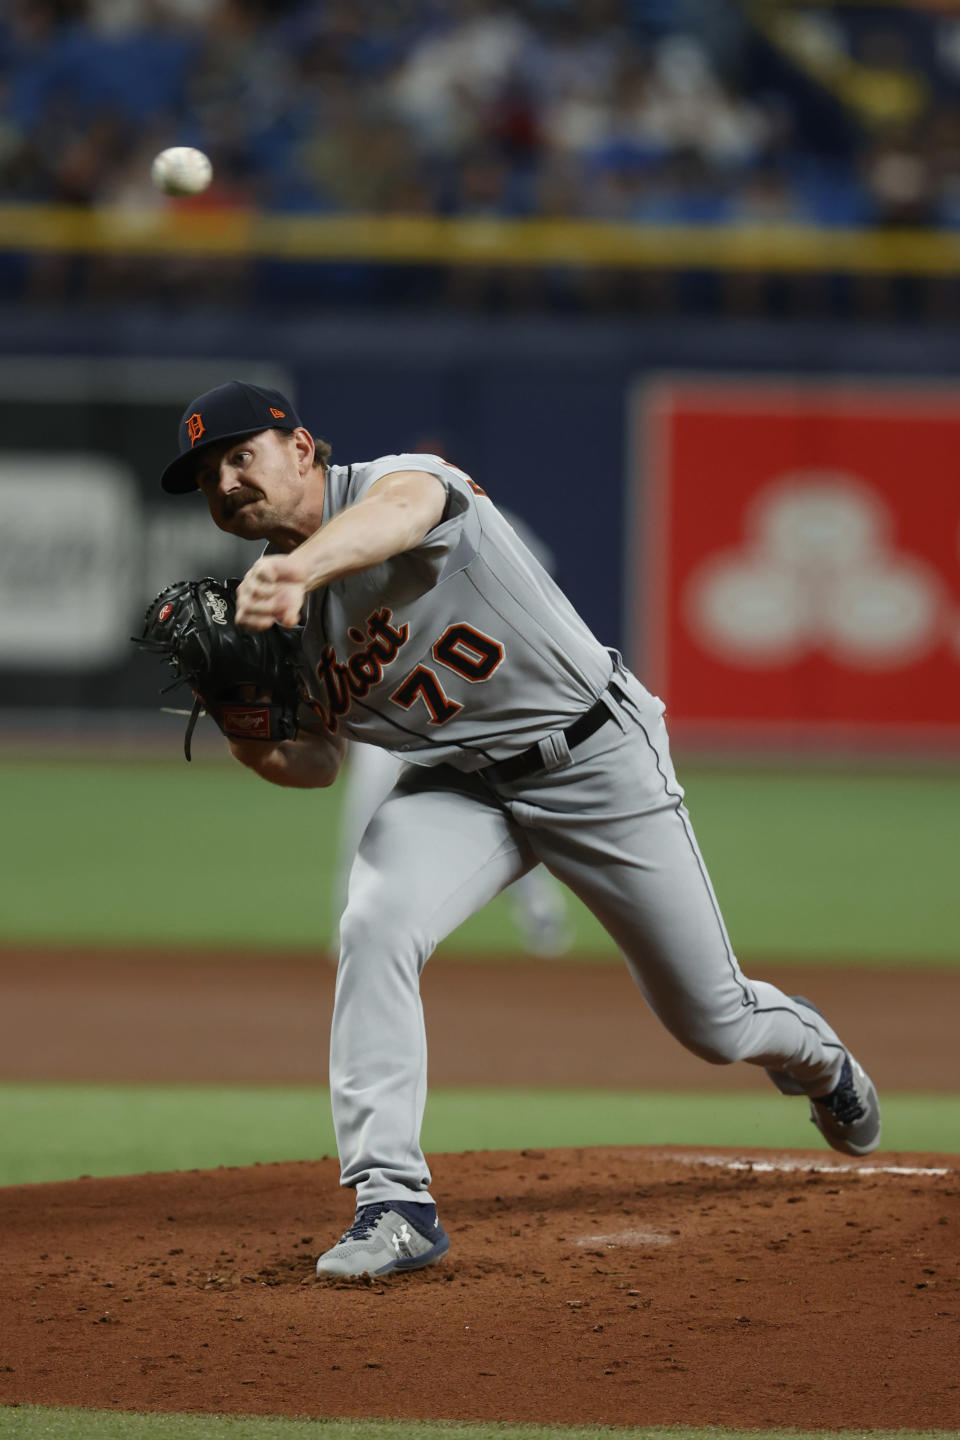 Detroit Tigers pitcher Tyler Alexander works from the mound against the Tampa Bay Rays during the first inning of a baseball game on Thursday, Sept. 16, 2021, in St. Petersburg, Fla. (AP Photo/Scott Audette)